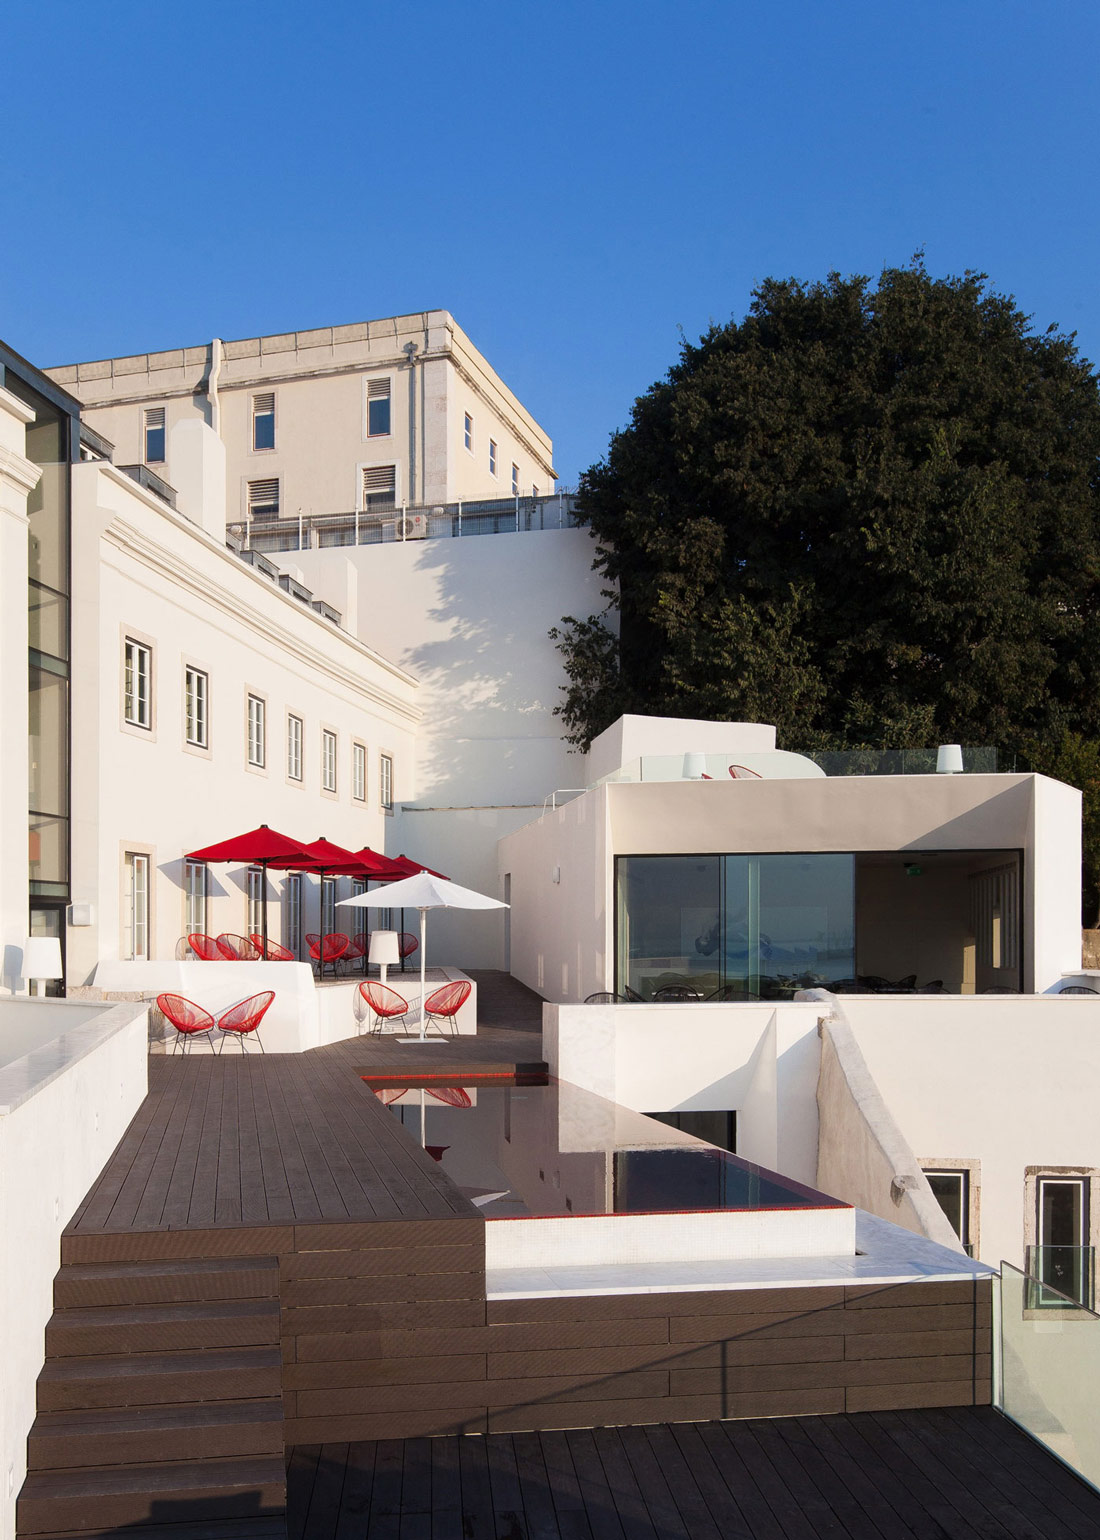 Pool, Terrace, Boutique Hotel in the Heart of Alfama, Lisbon